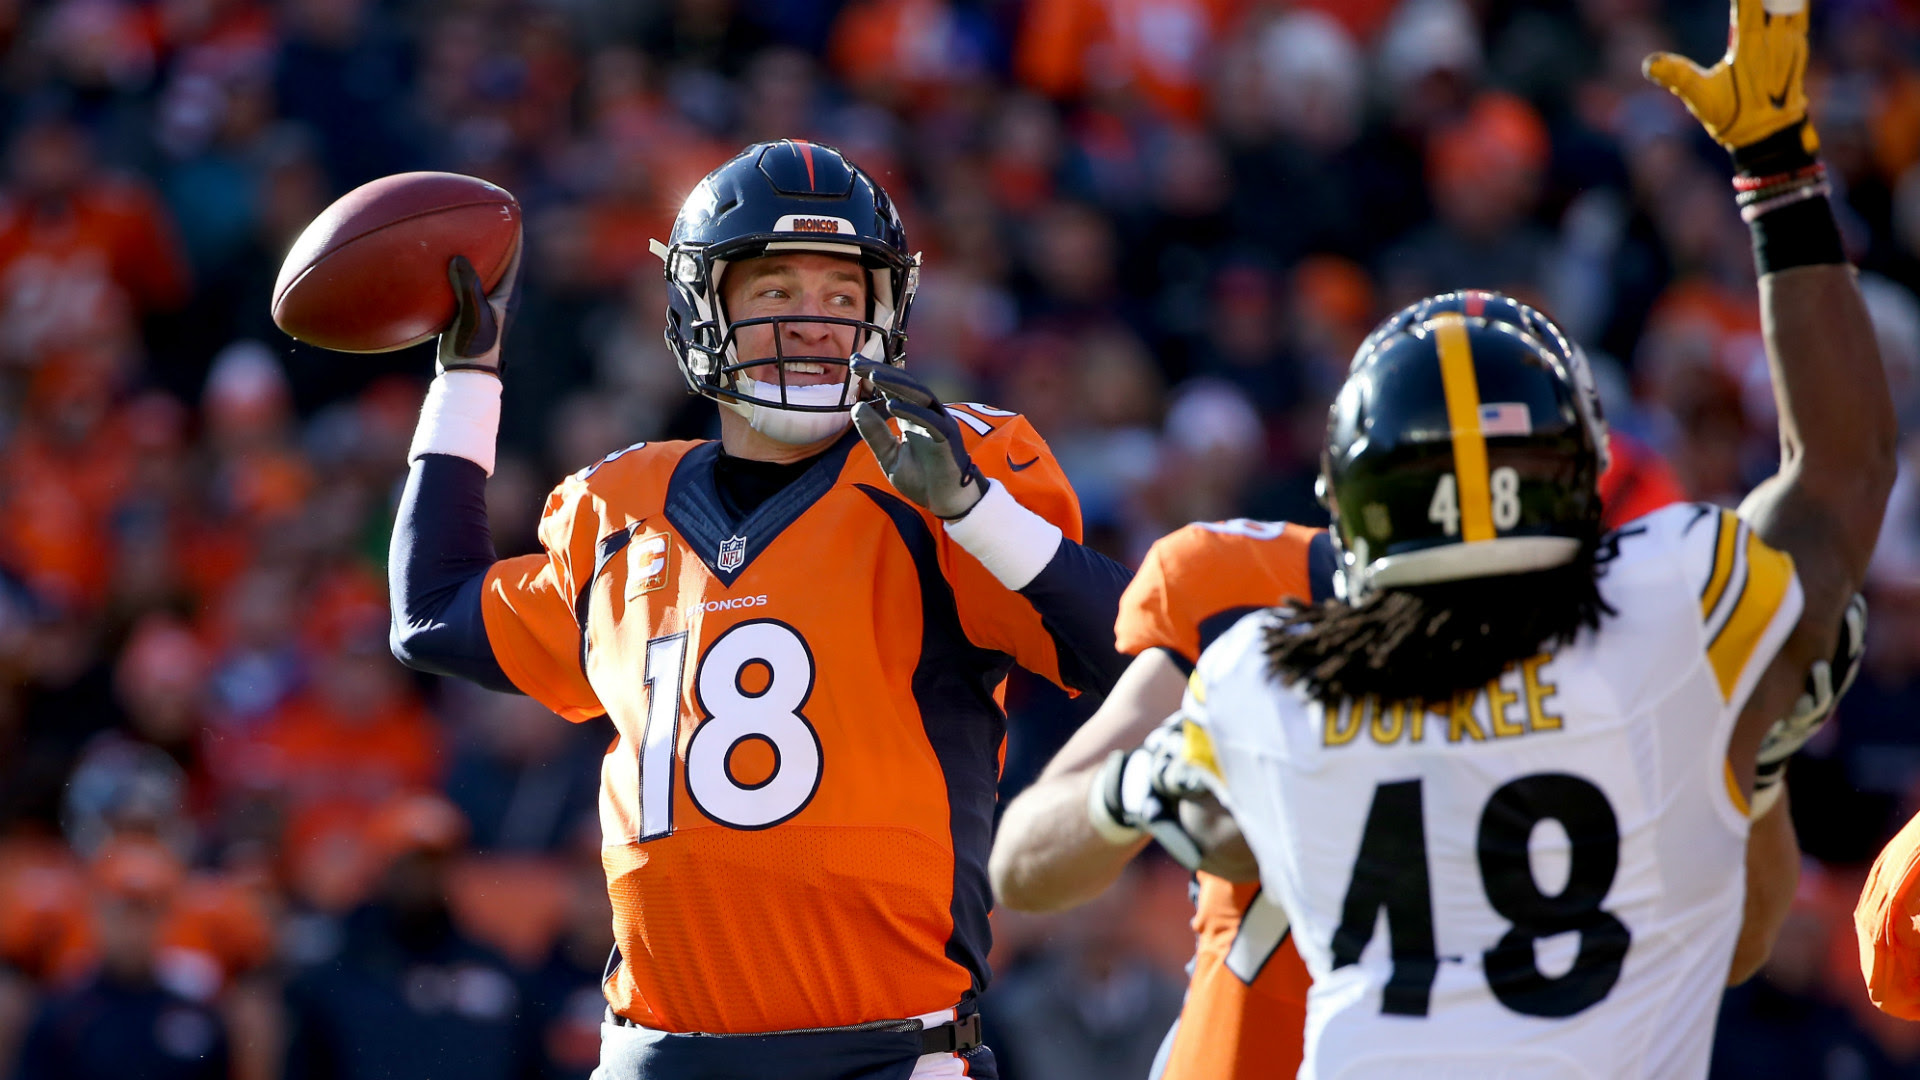 Broncos wear down undermanned Steelers, advance to AFC title game  NFL  Sporting News